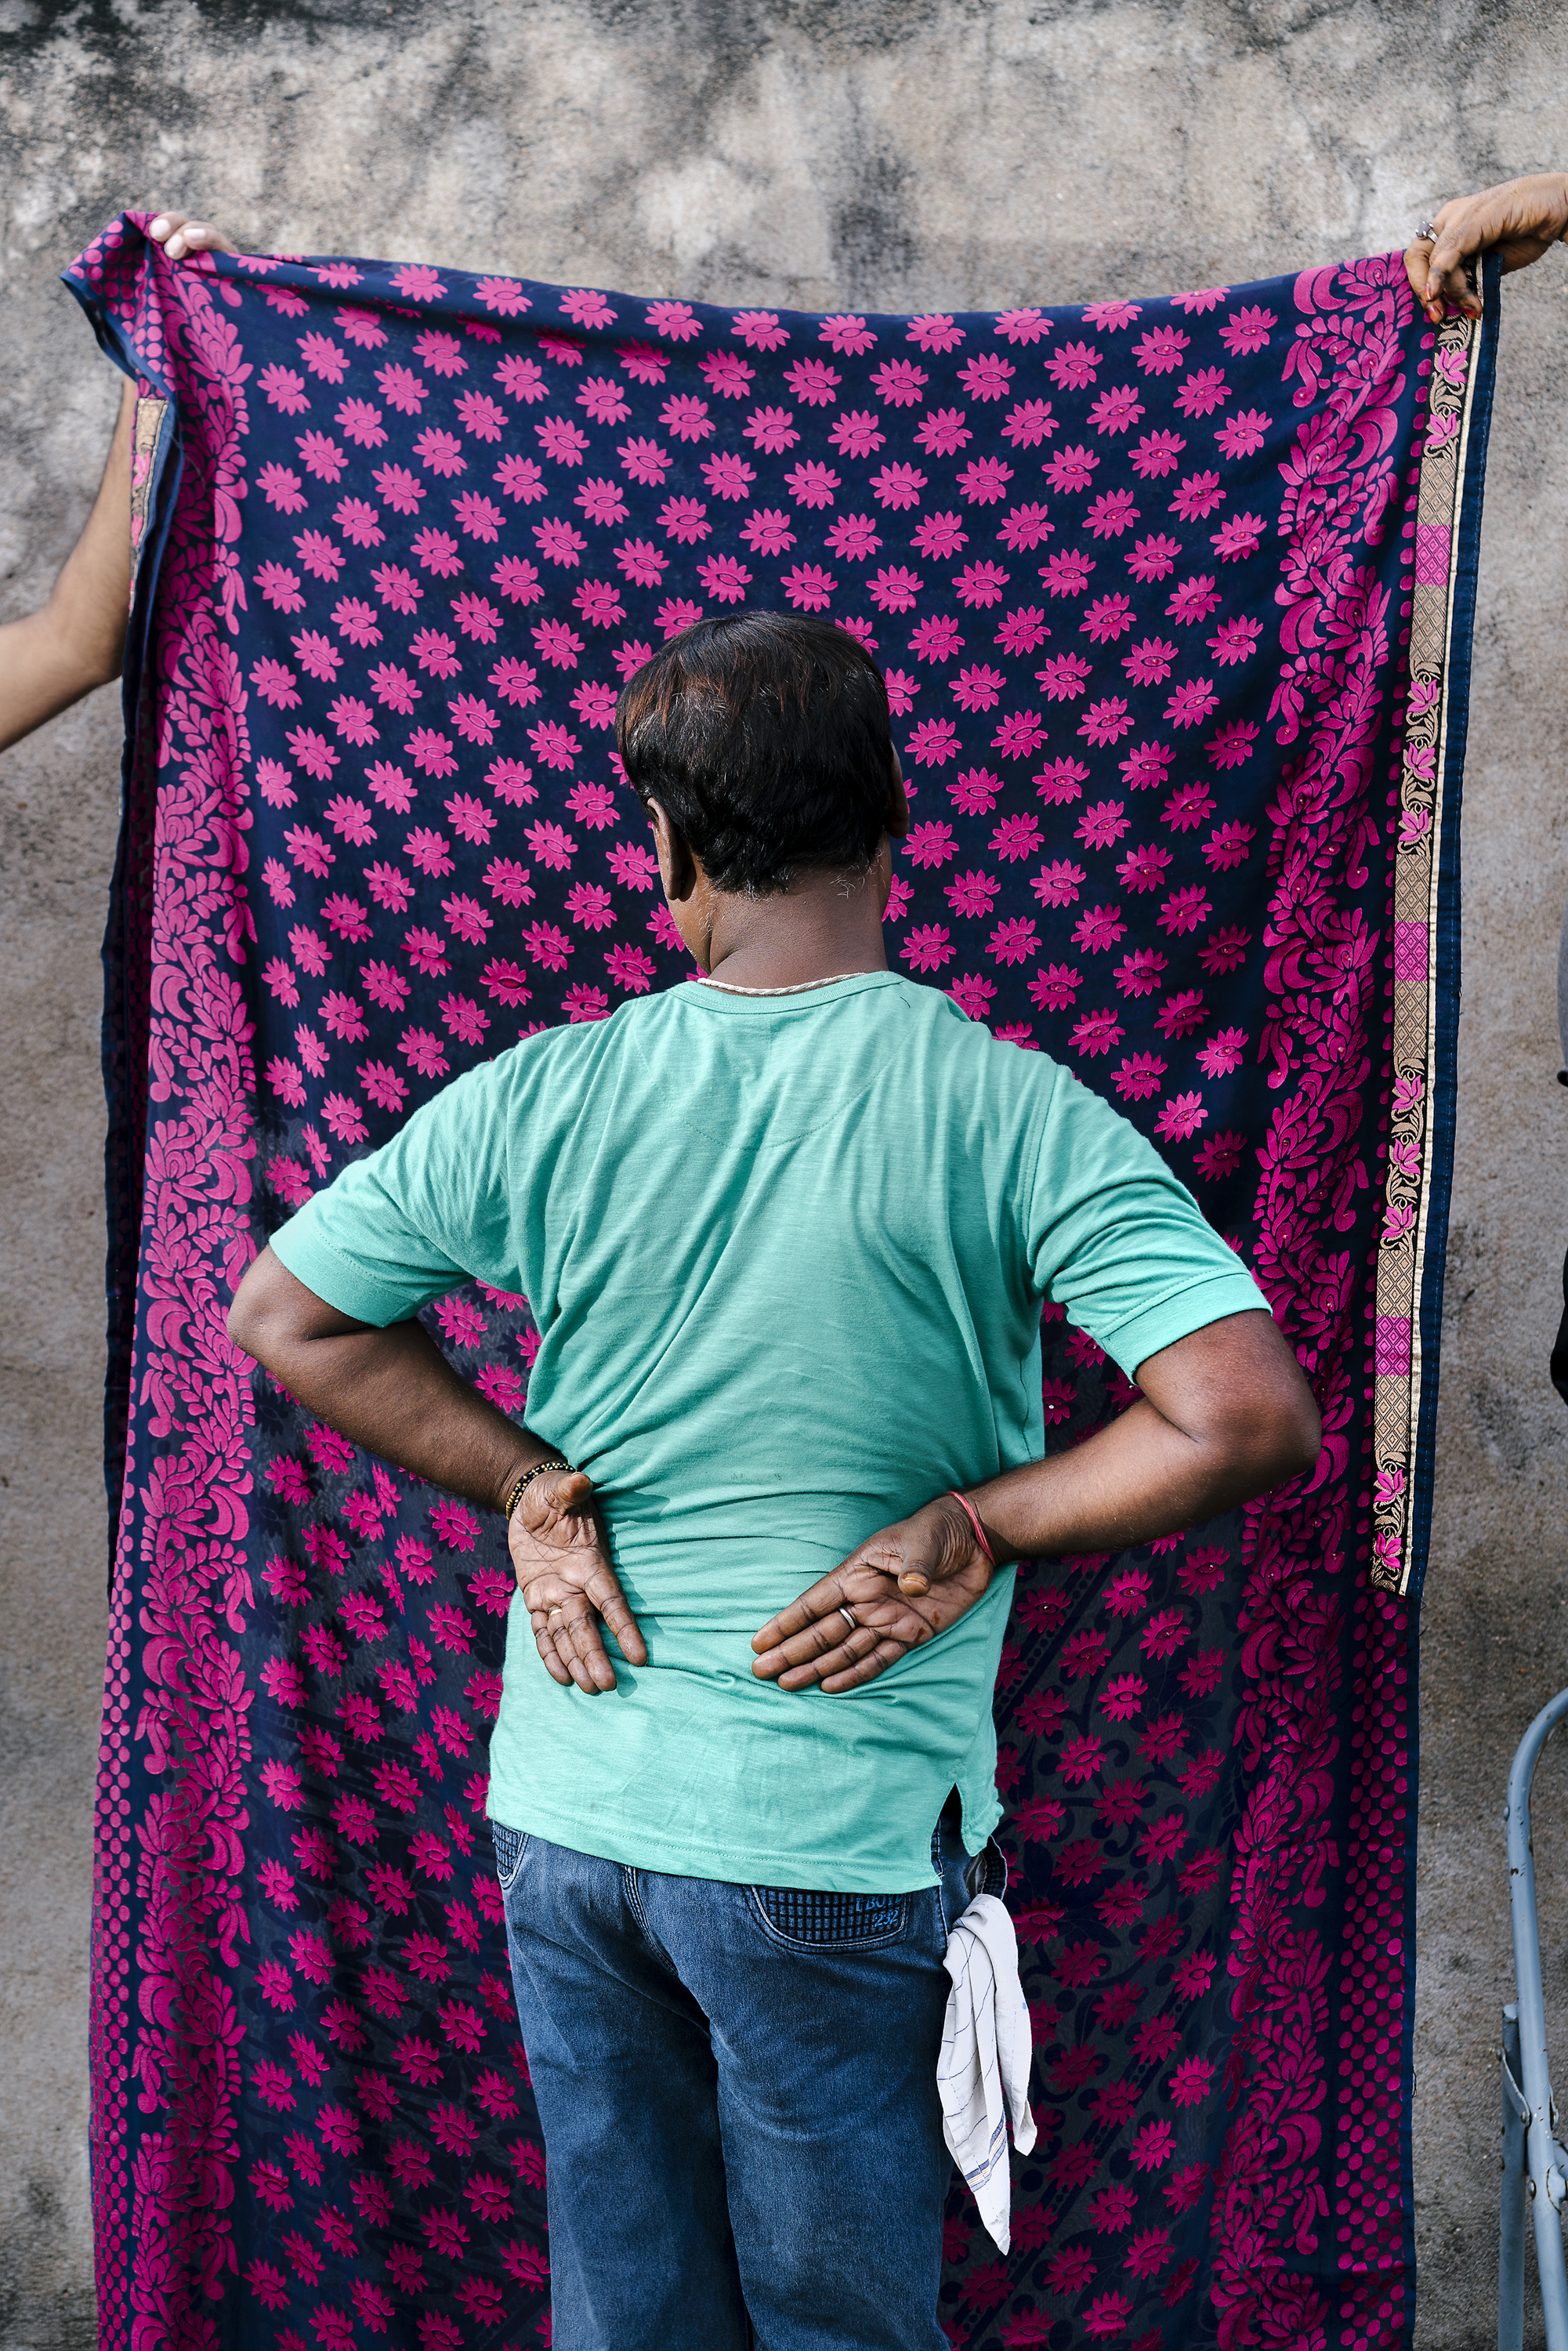 A gay man from the city of Patna poses for a portrait. He is not out, so he preferred to hide his identity.